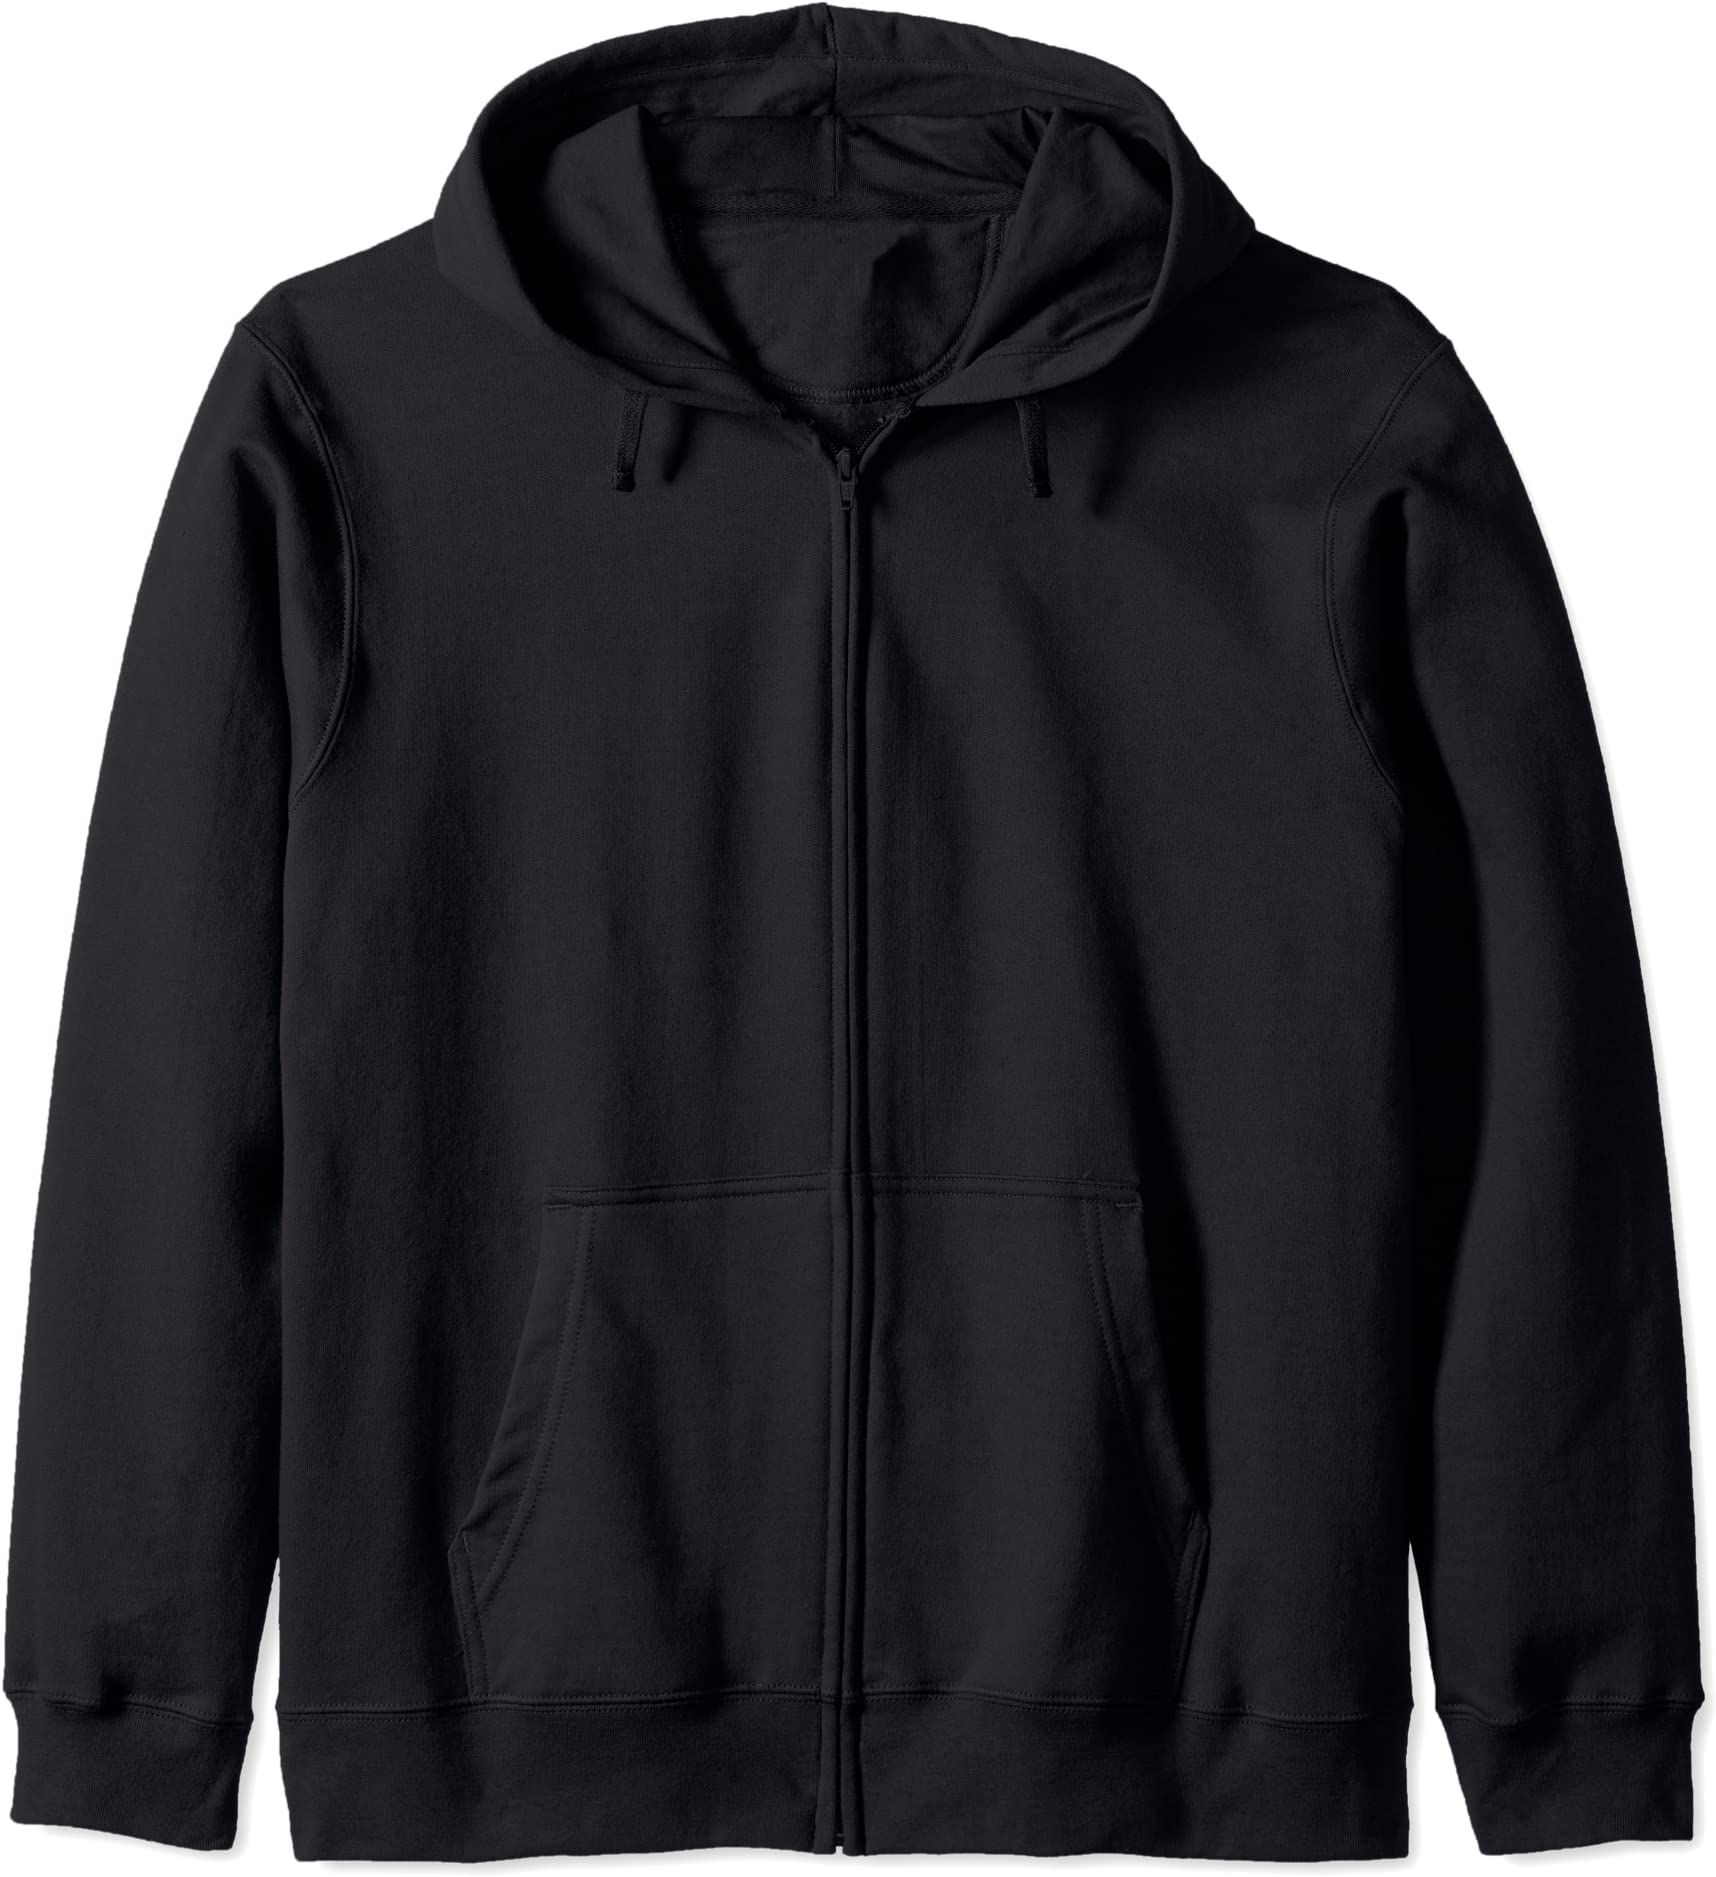 This is What an AWEASOME May Looks Like Hoodie Black